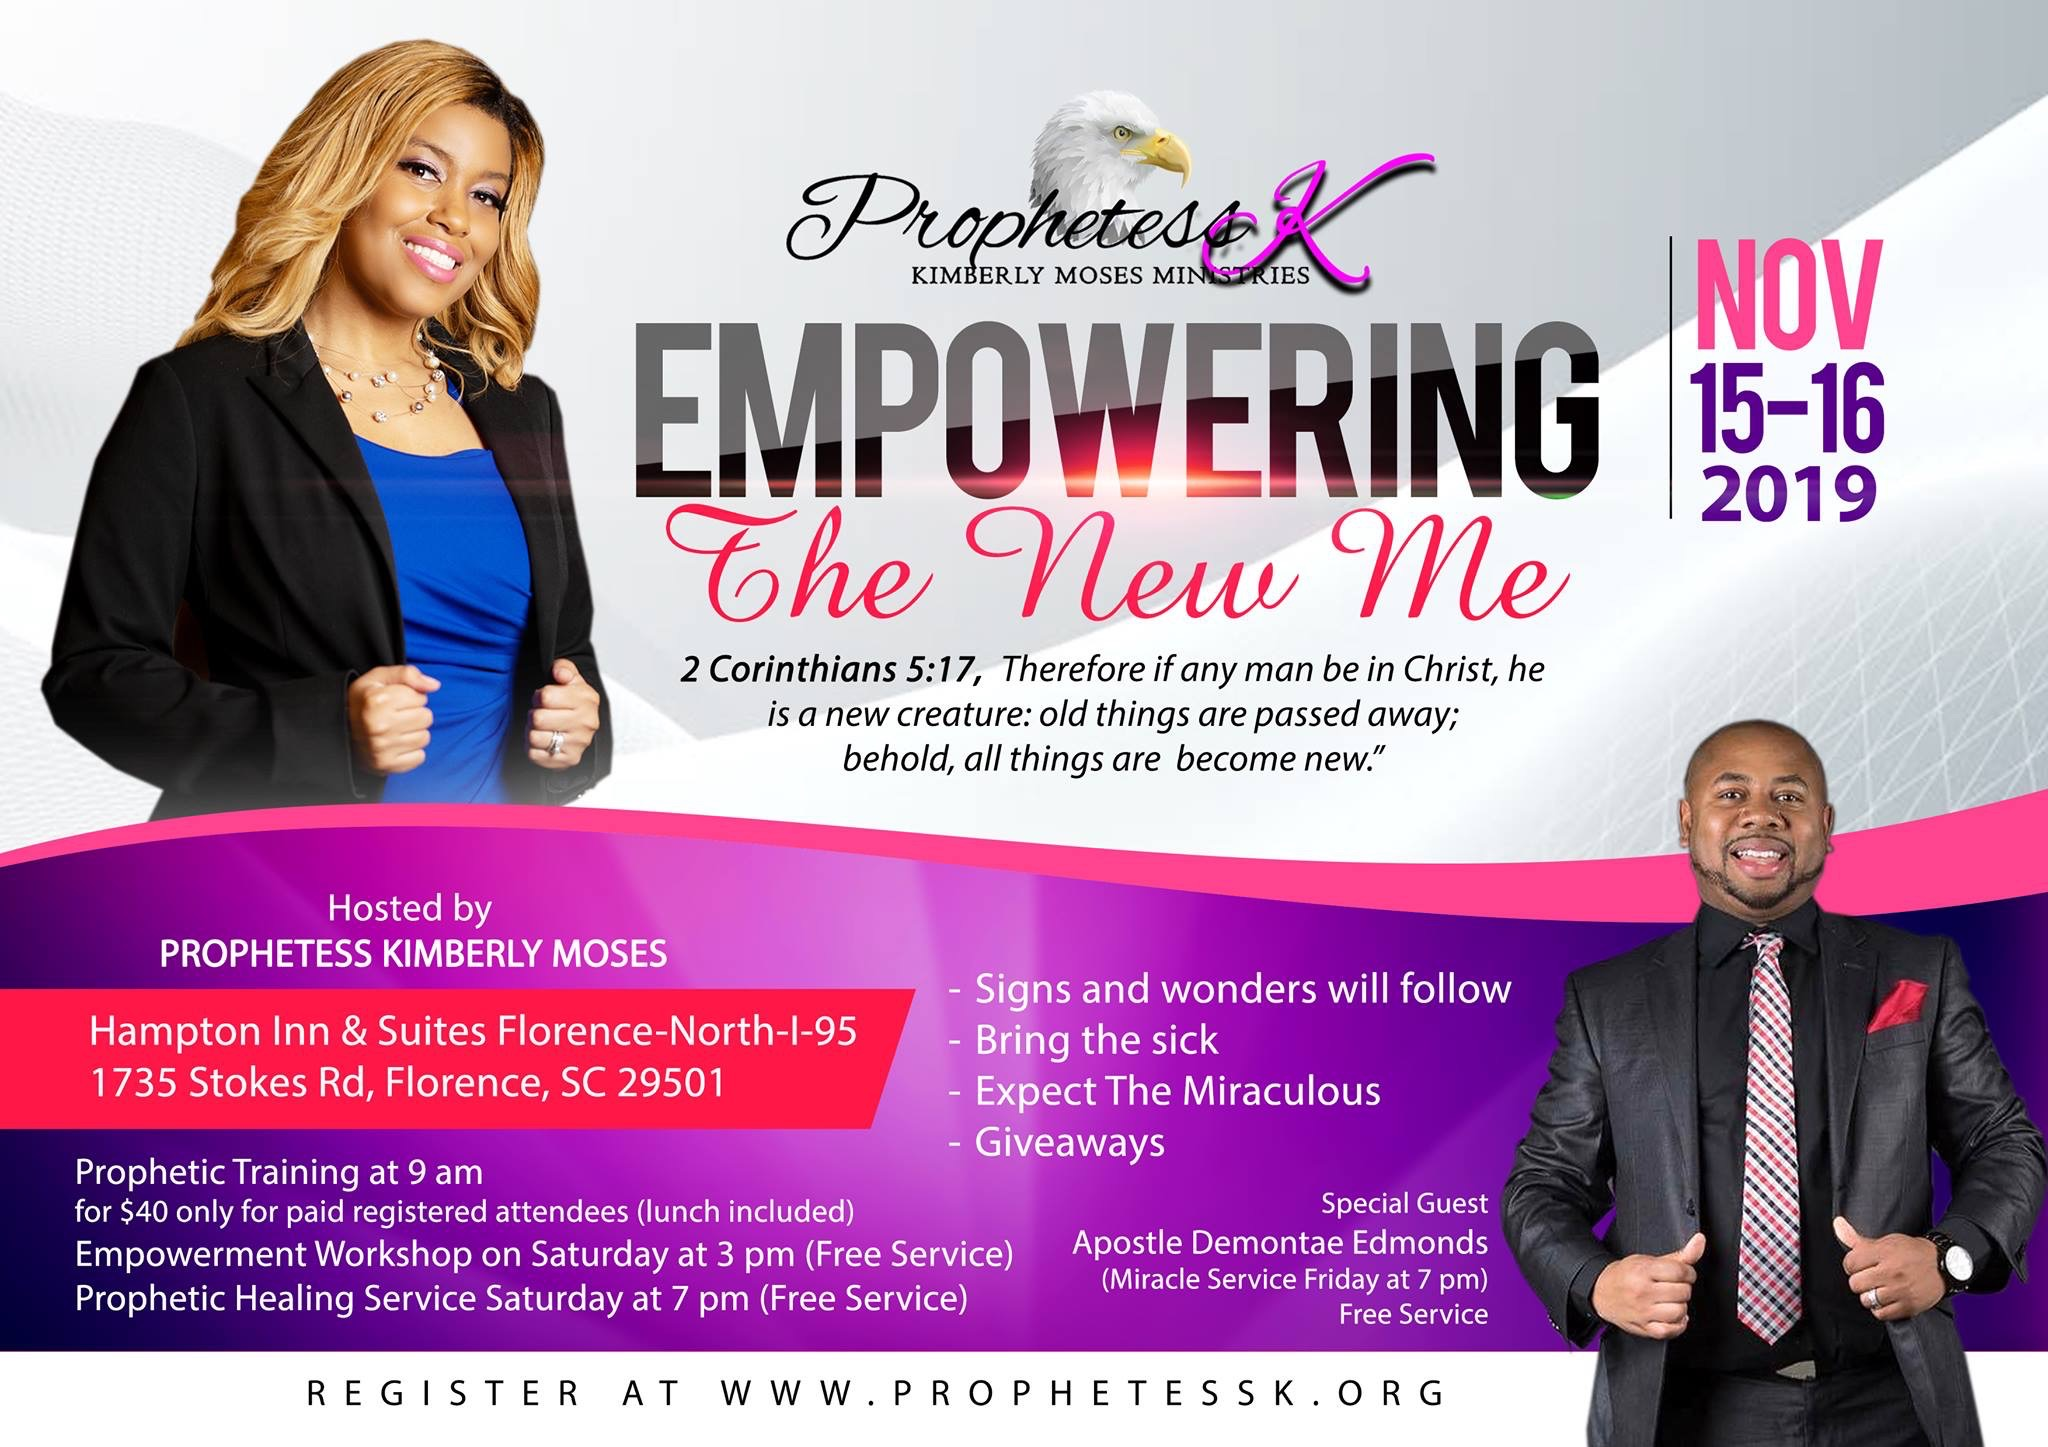 Kimberly Moses hosts her annual life-changing event in November